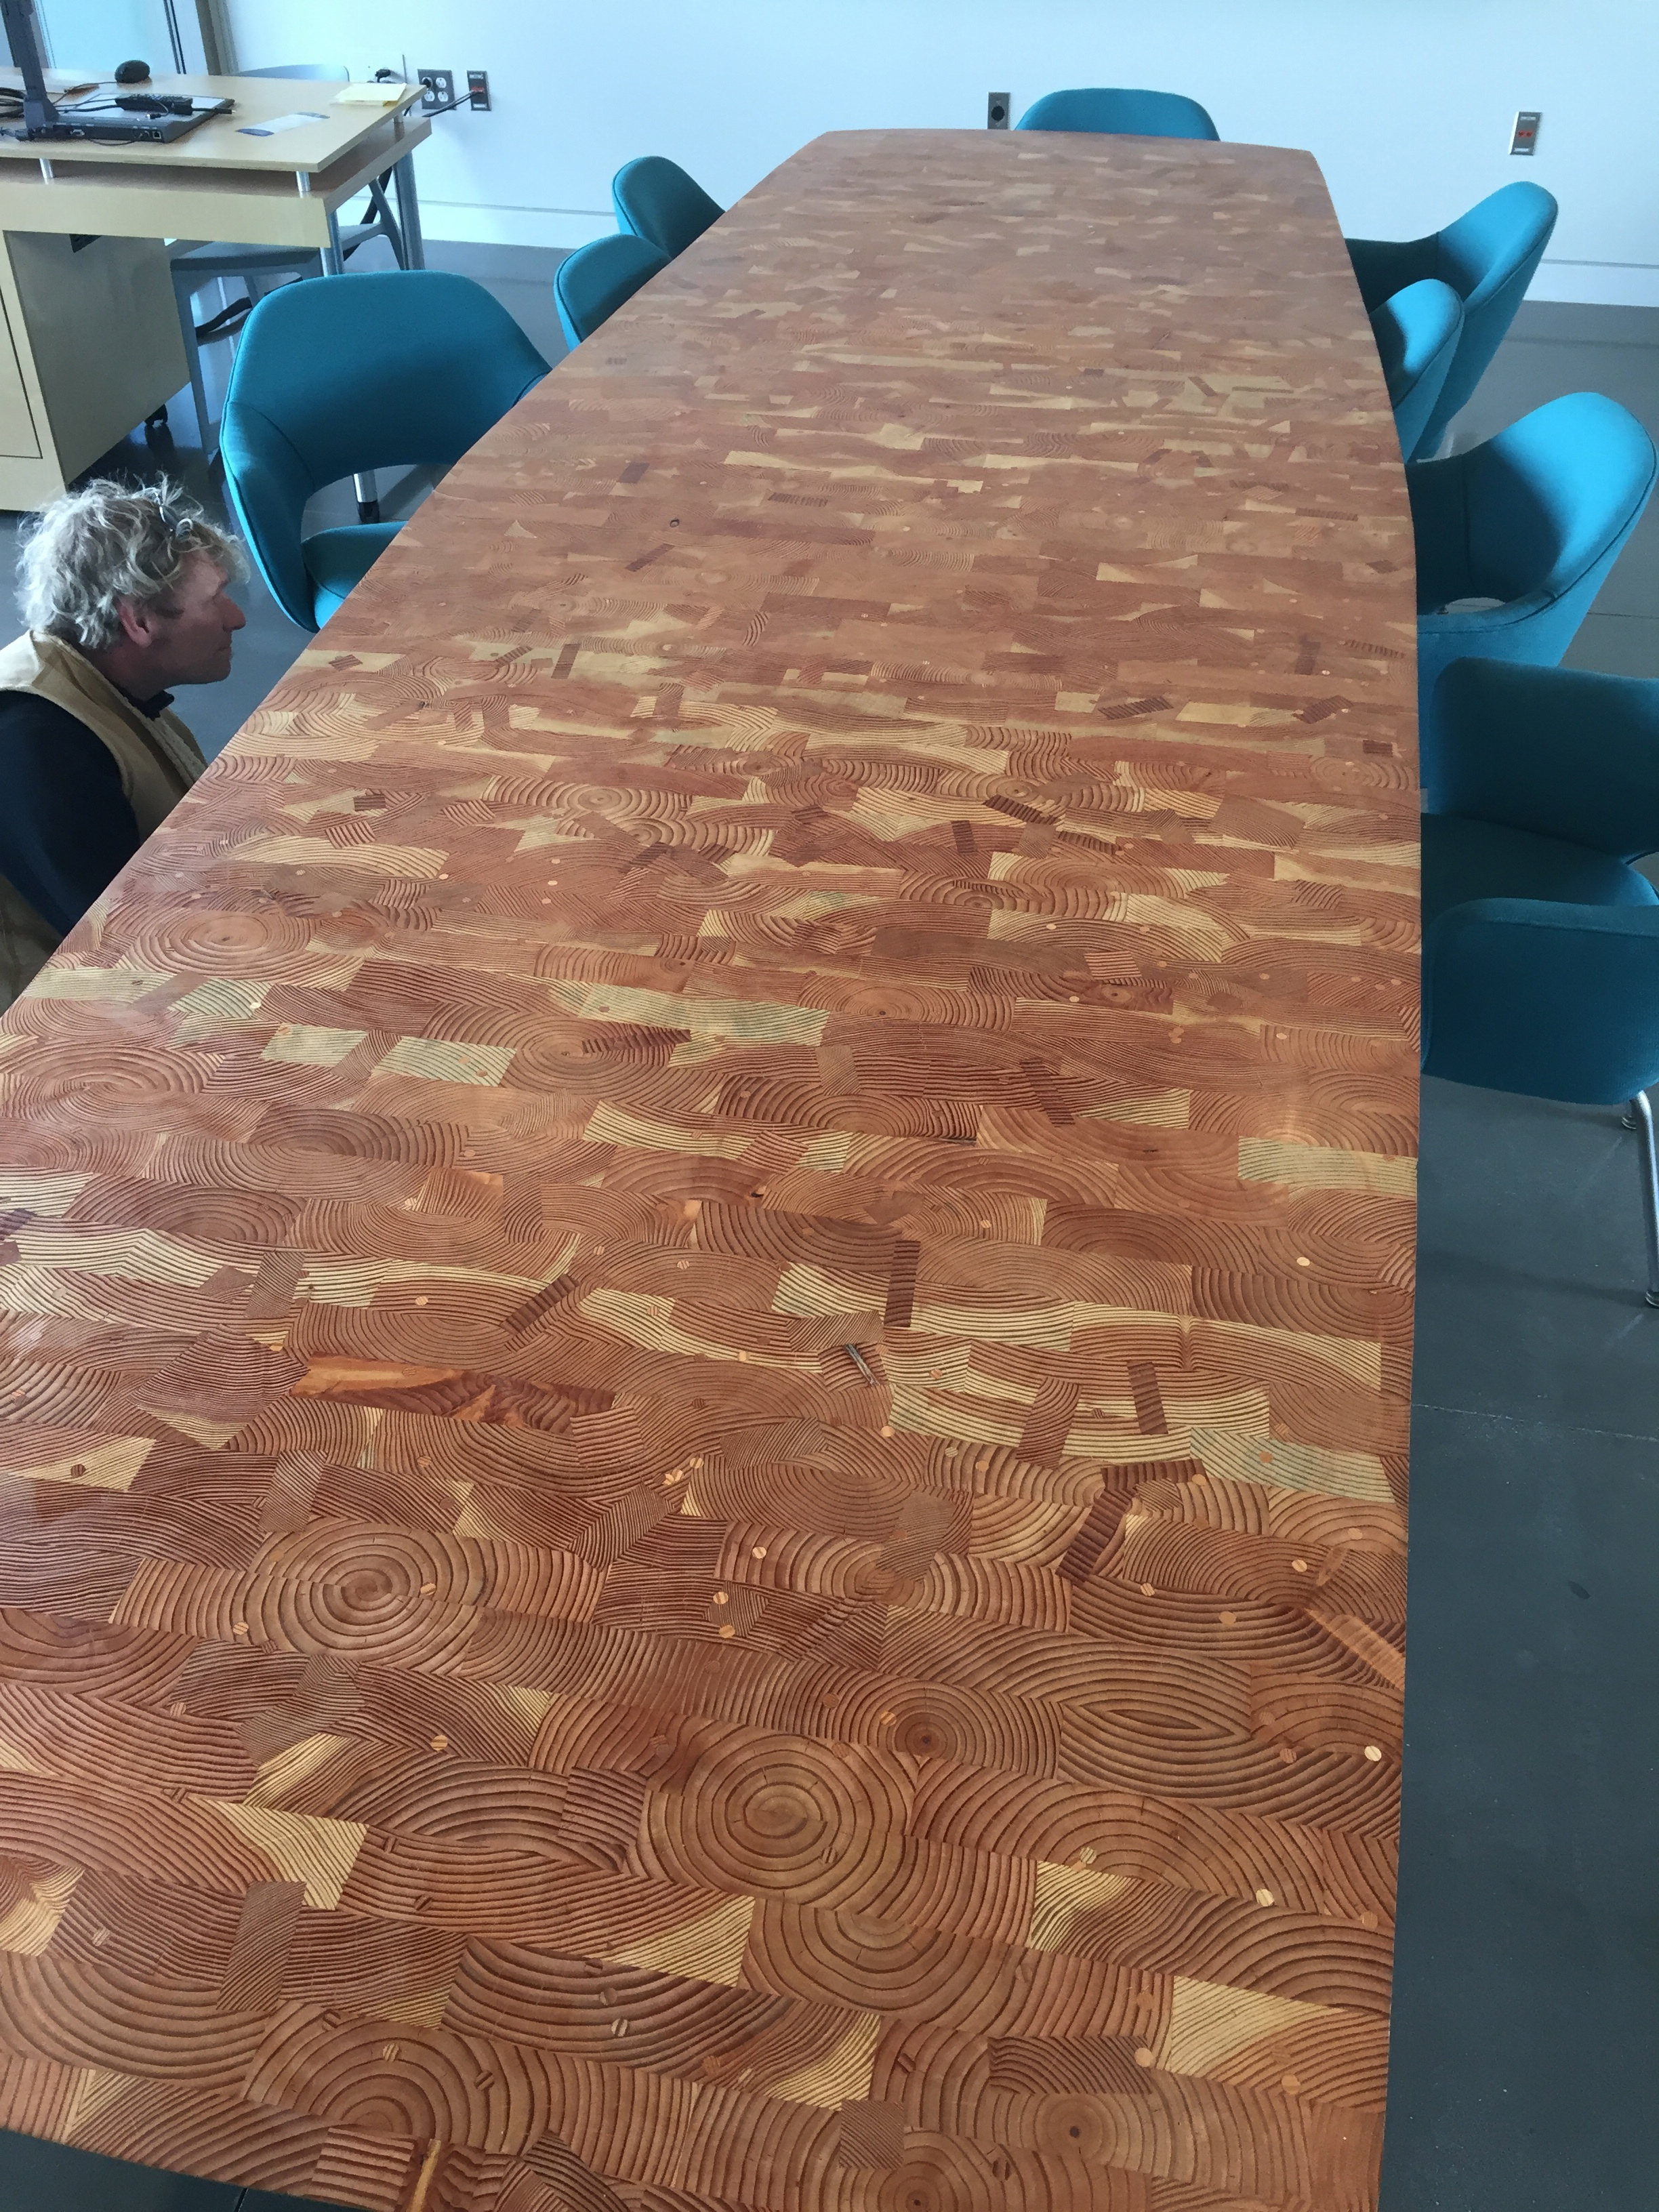 conference table2.jpg